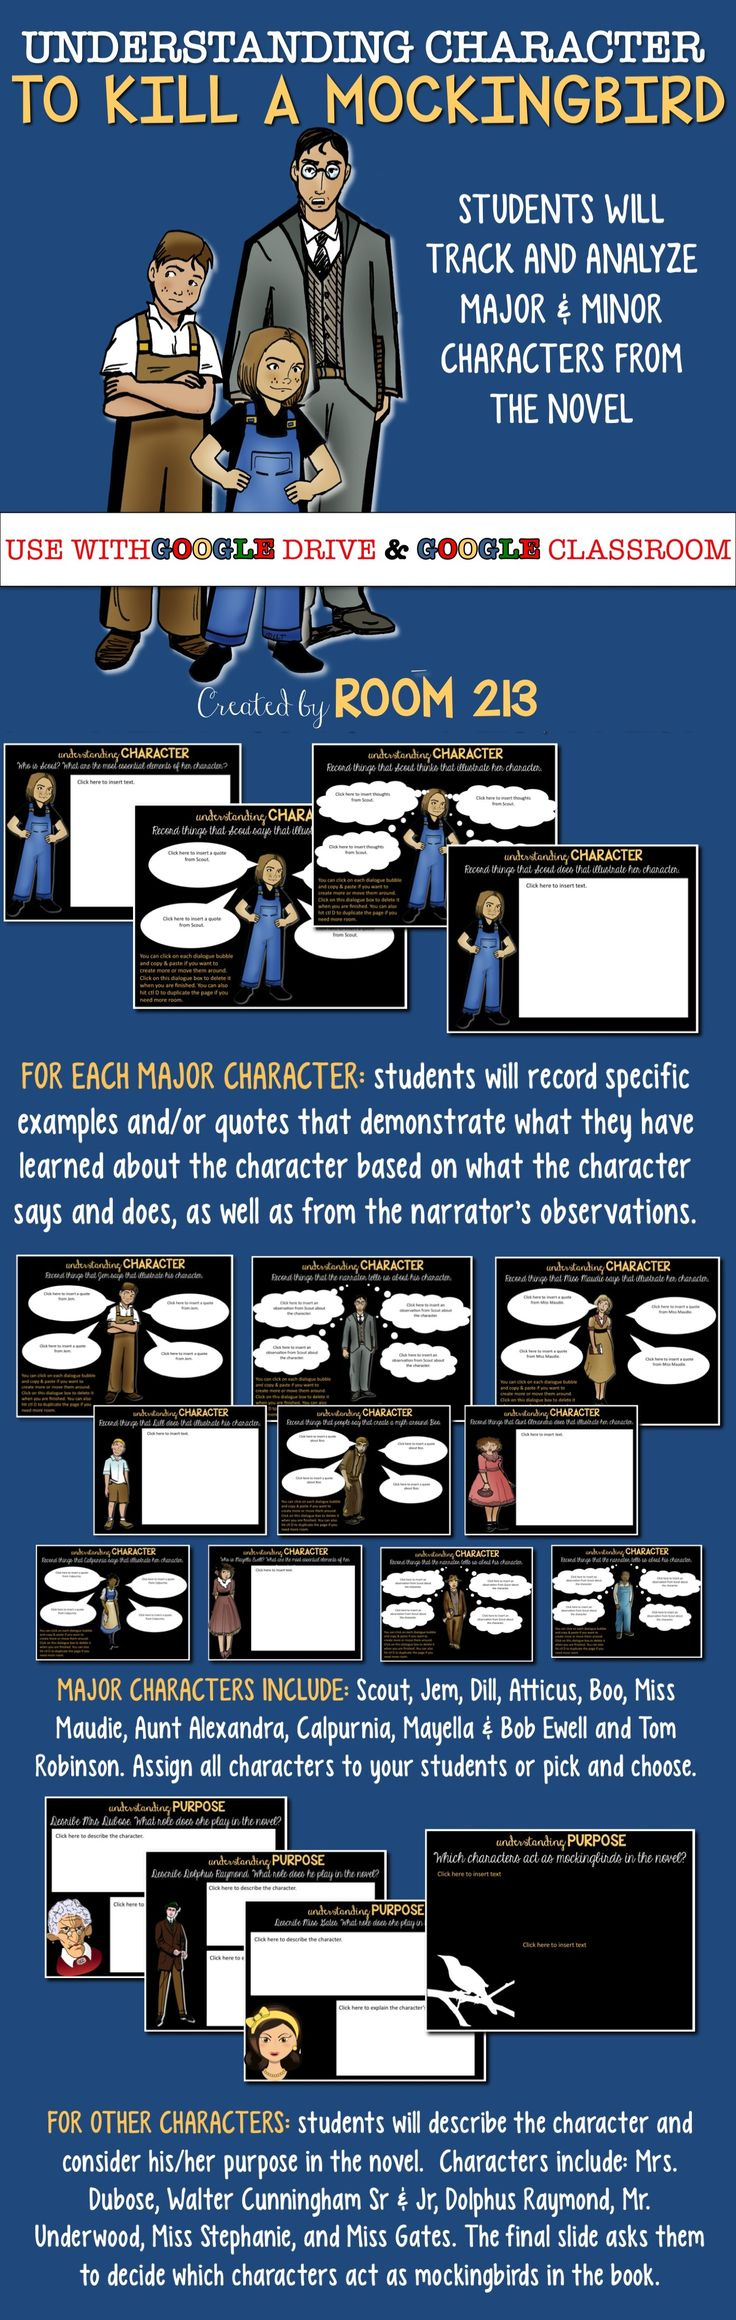 best ideas about tkam characters to kill a to kill a mockingbird digital character analysis